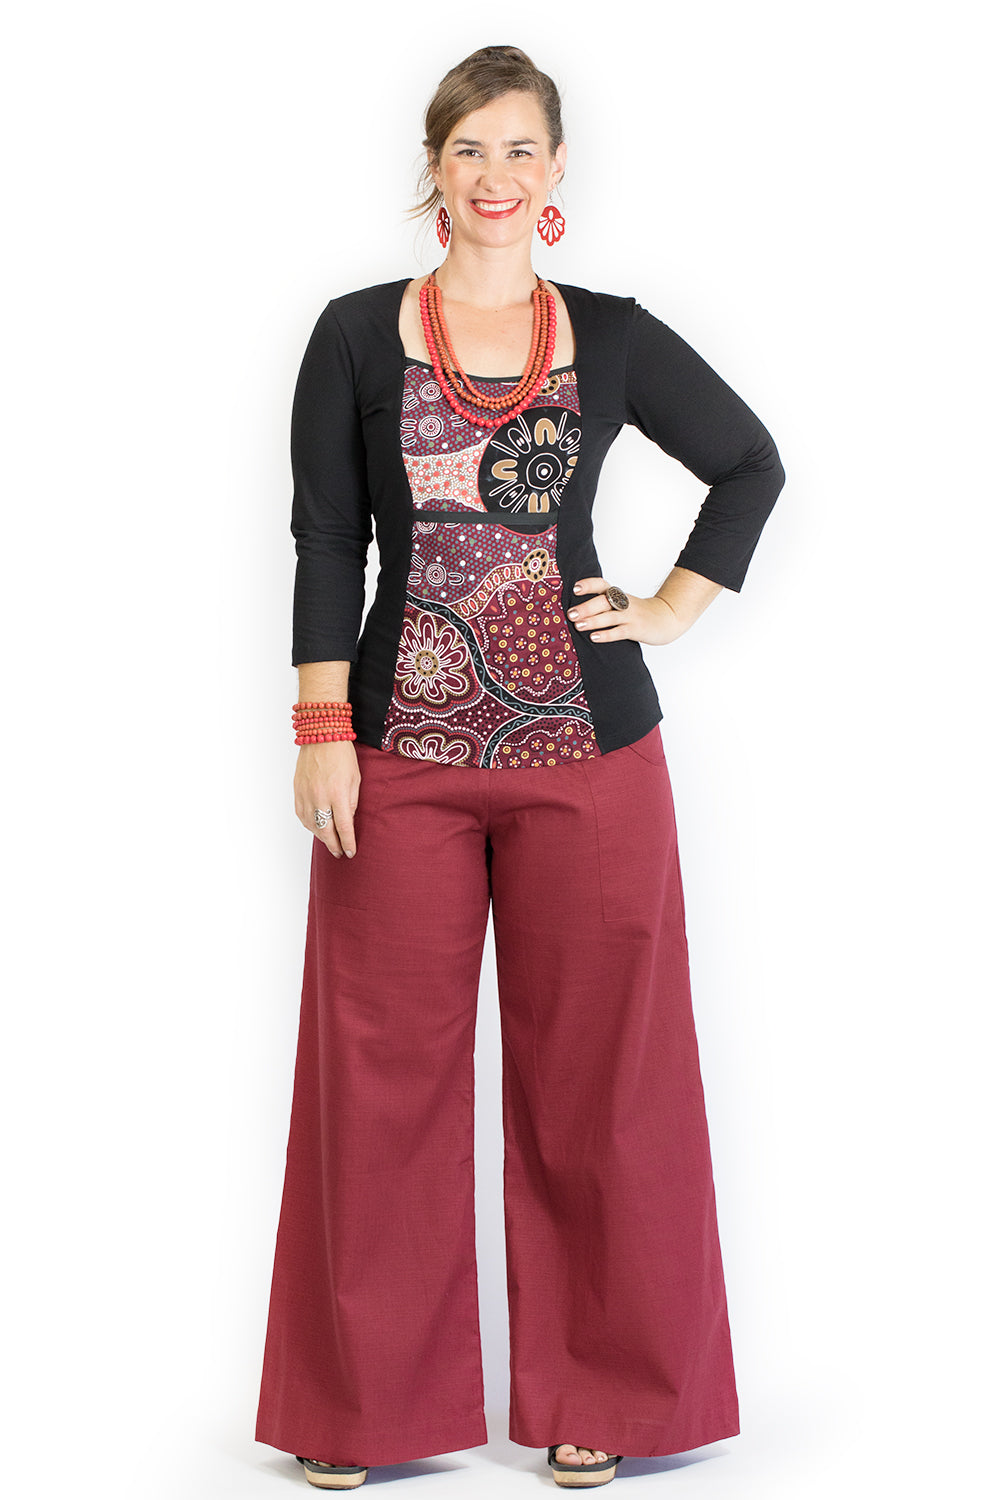 Sidewalk Pants - Burgundy Cotton Dobby